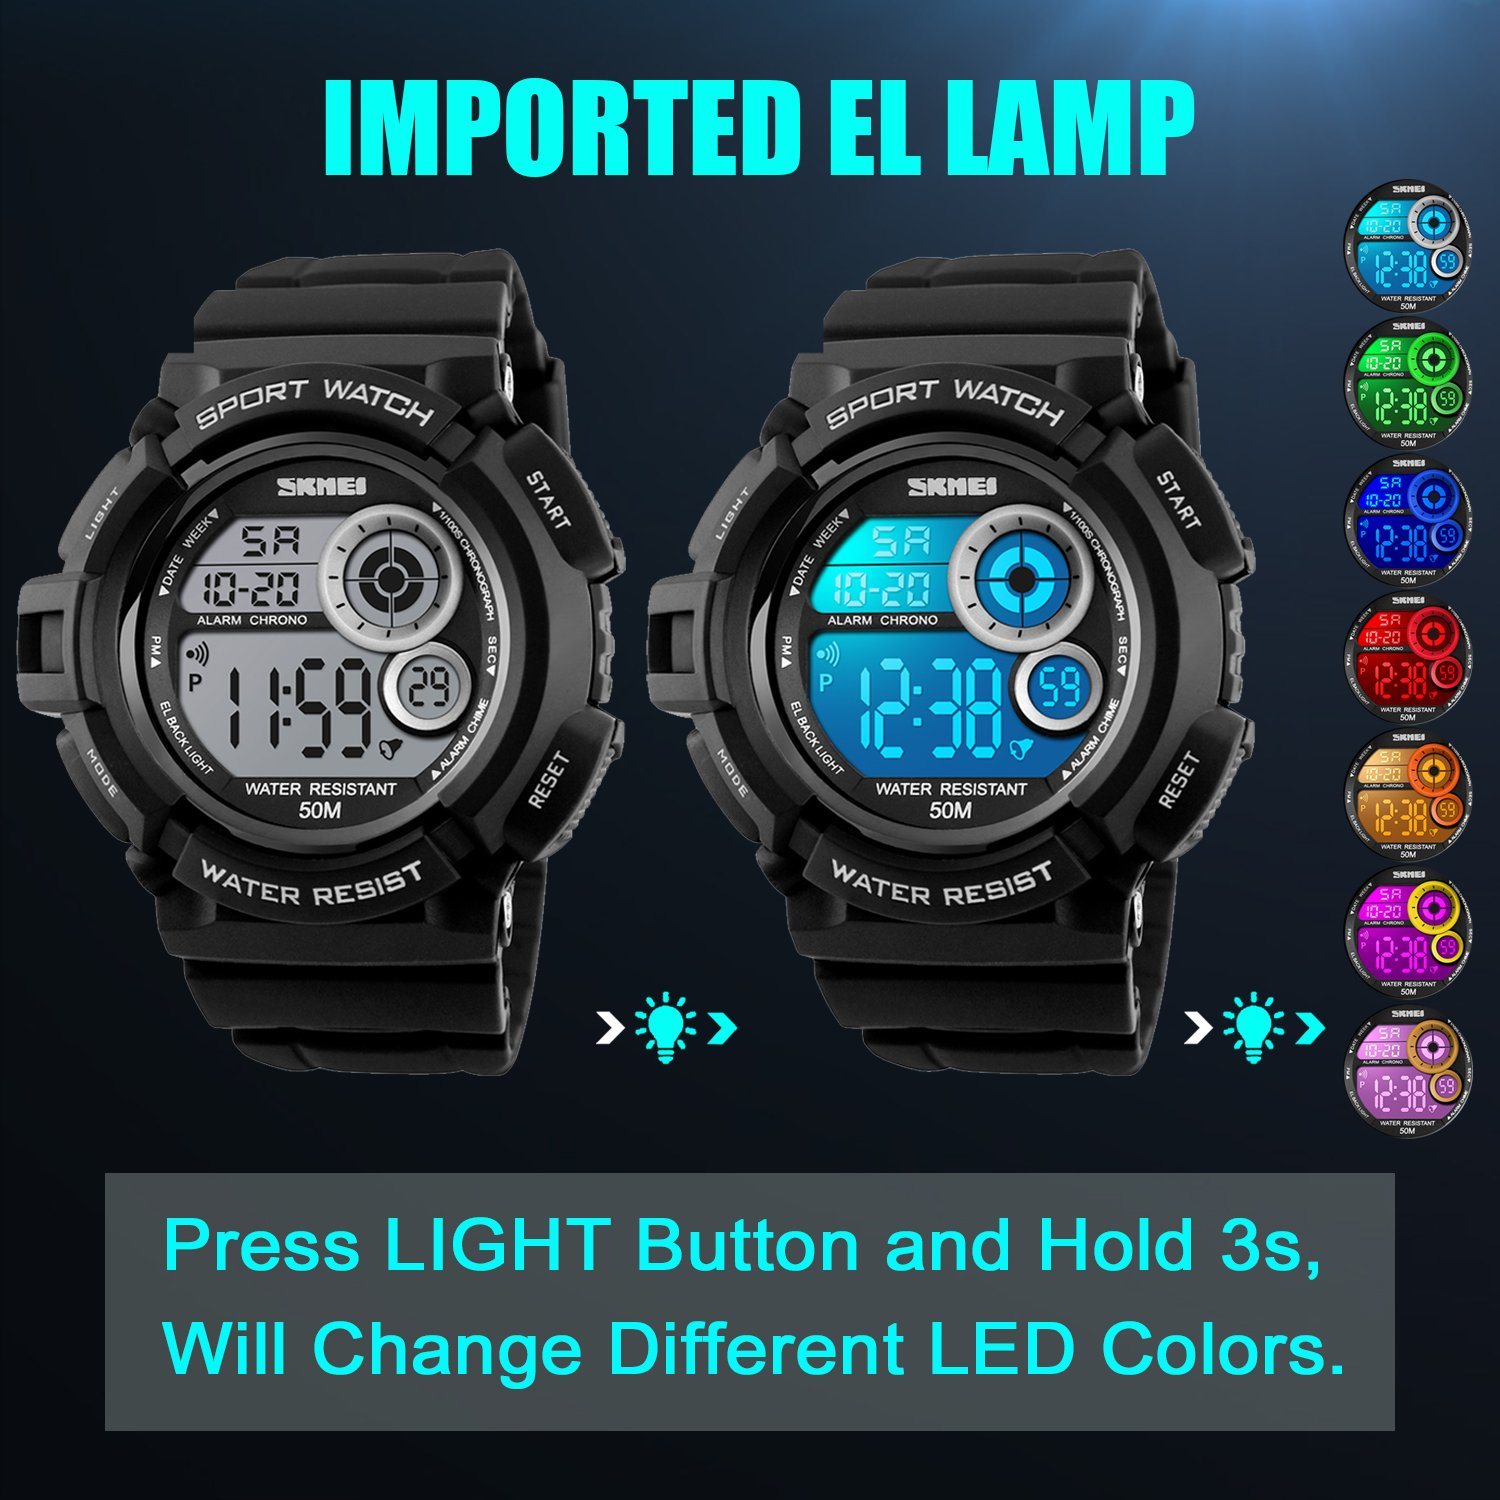 Men's Digital Sports Watch LED Screen Large Face Military Watches and Waterproof Casual Luminous Stopwatch Alarm Simple Army Watch Black by USWAT (Image #3)